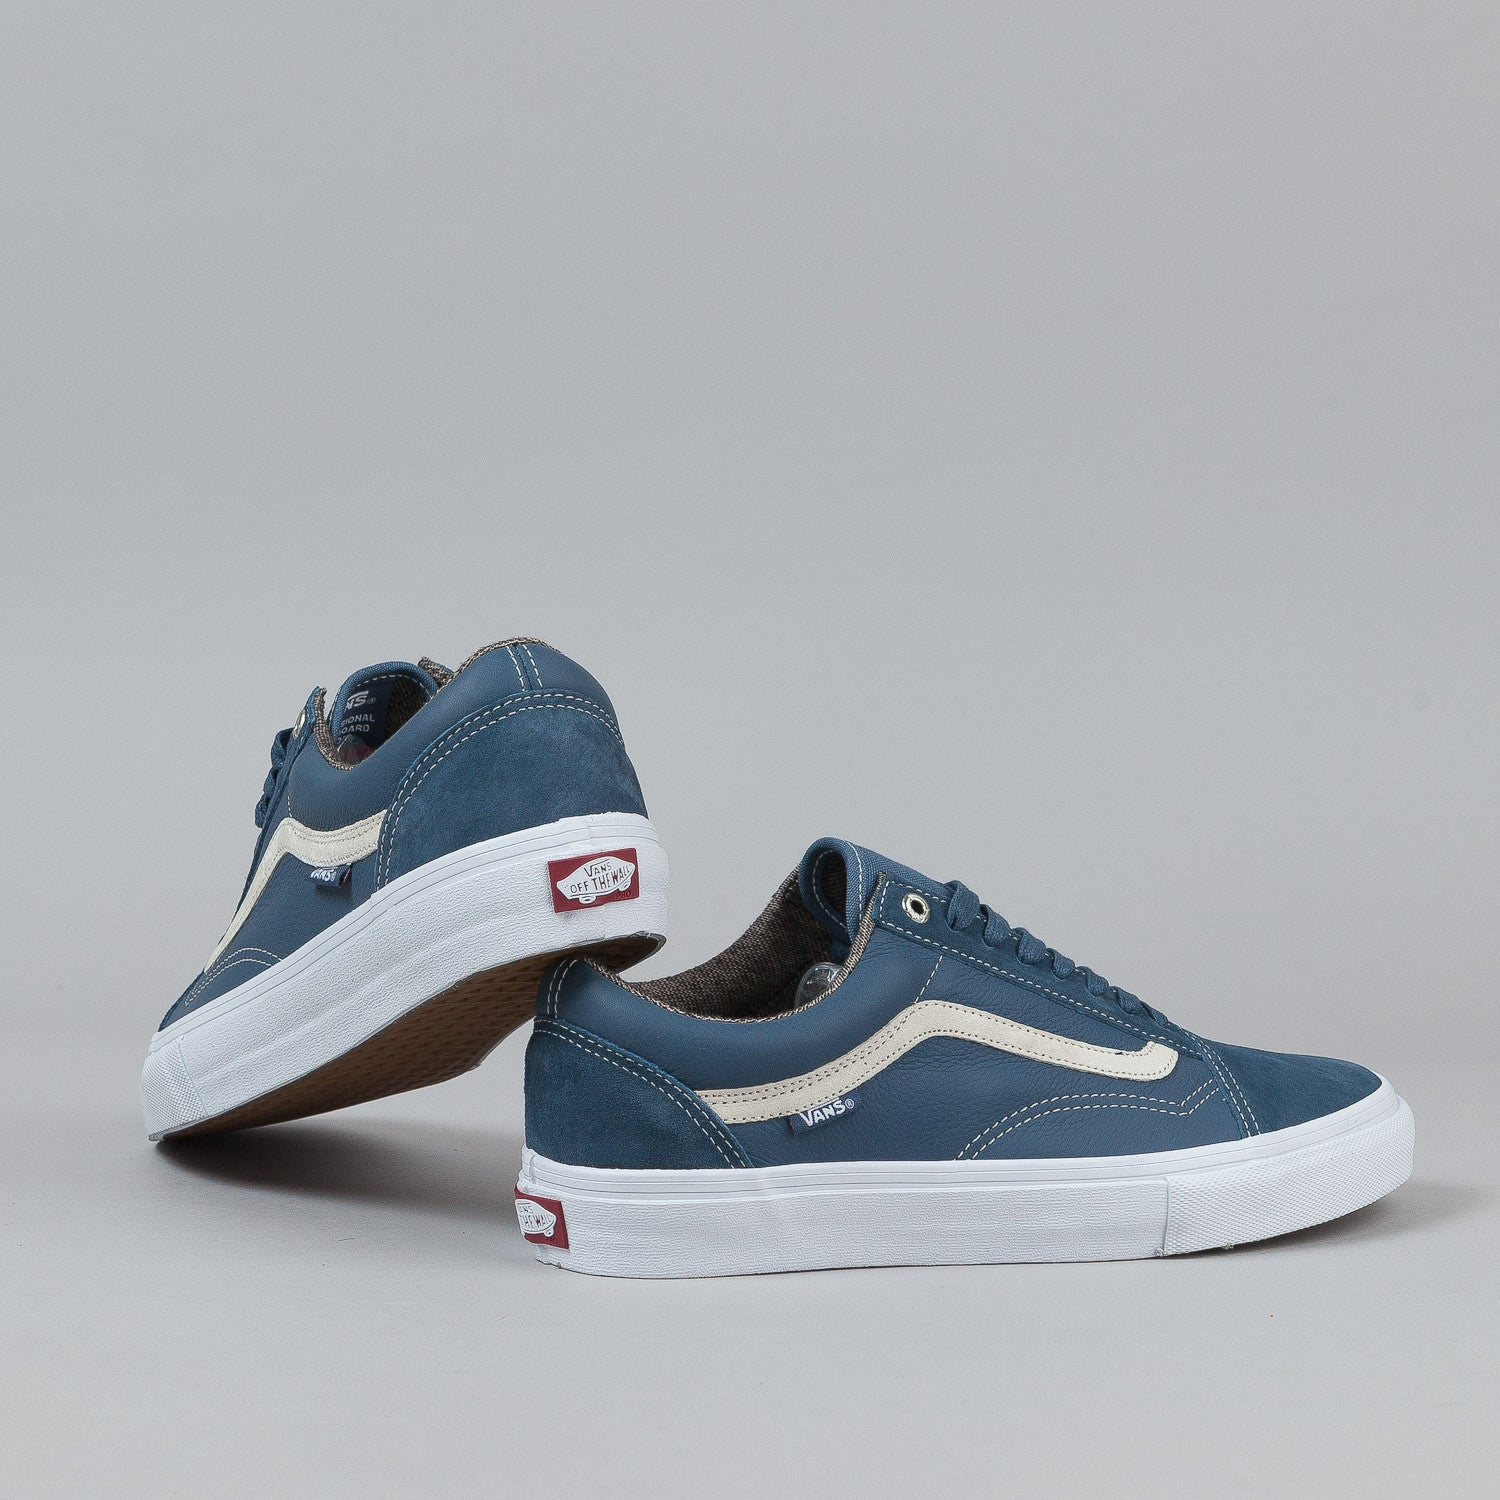 Vans Old Skool Pro Shoes - Dull Navy